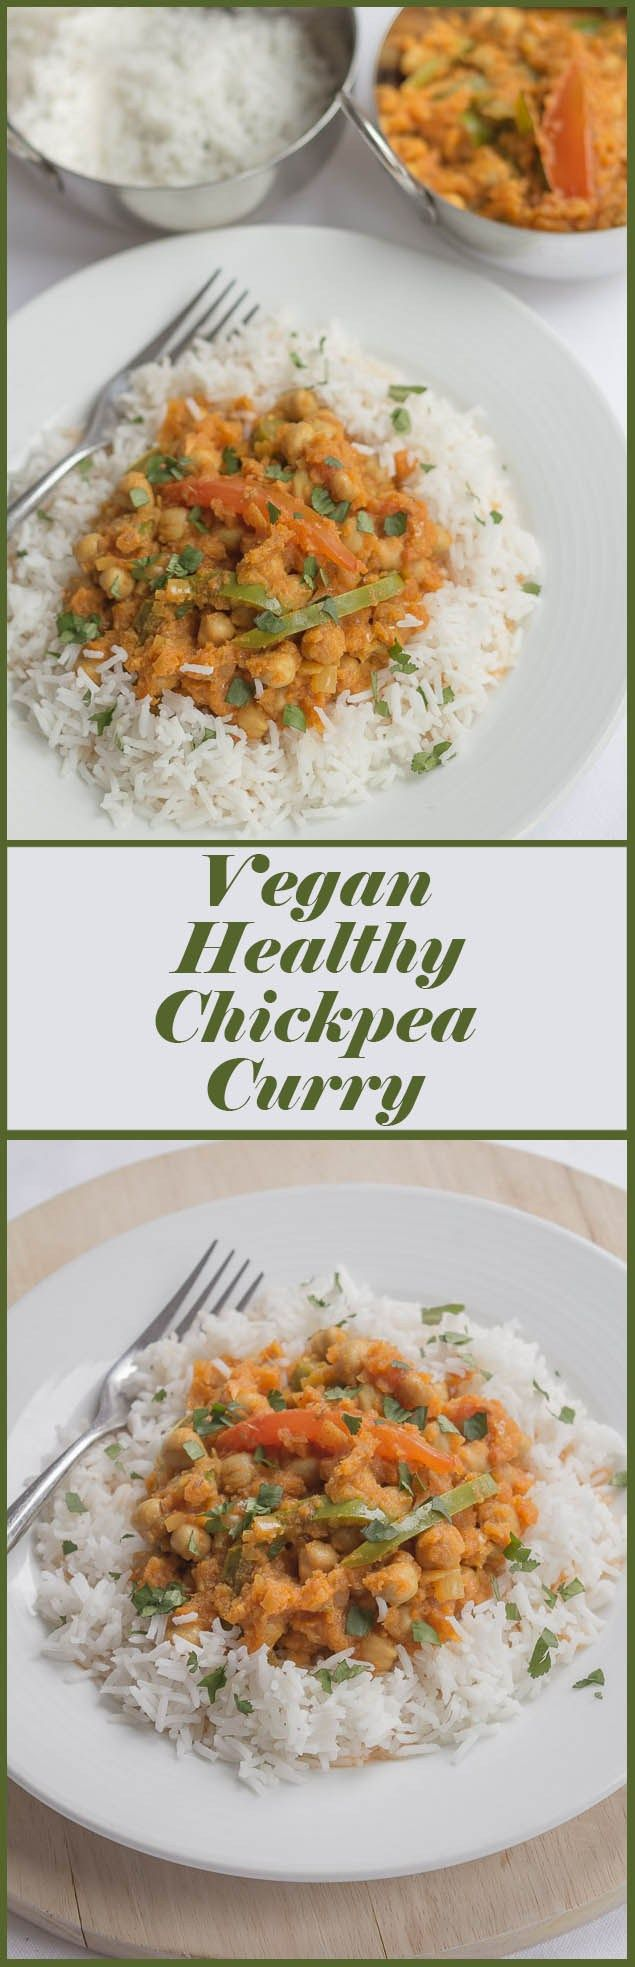 This tasty vegan vegetarian healthy chickpea curry is low cost, low calorie and extremely filling. One portion alone provides nearly 80% of your daily recommended dietary fibre recommendation.